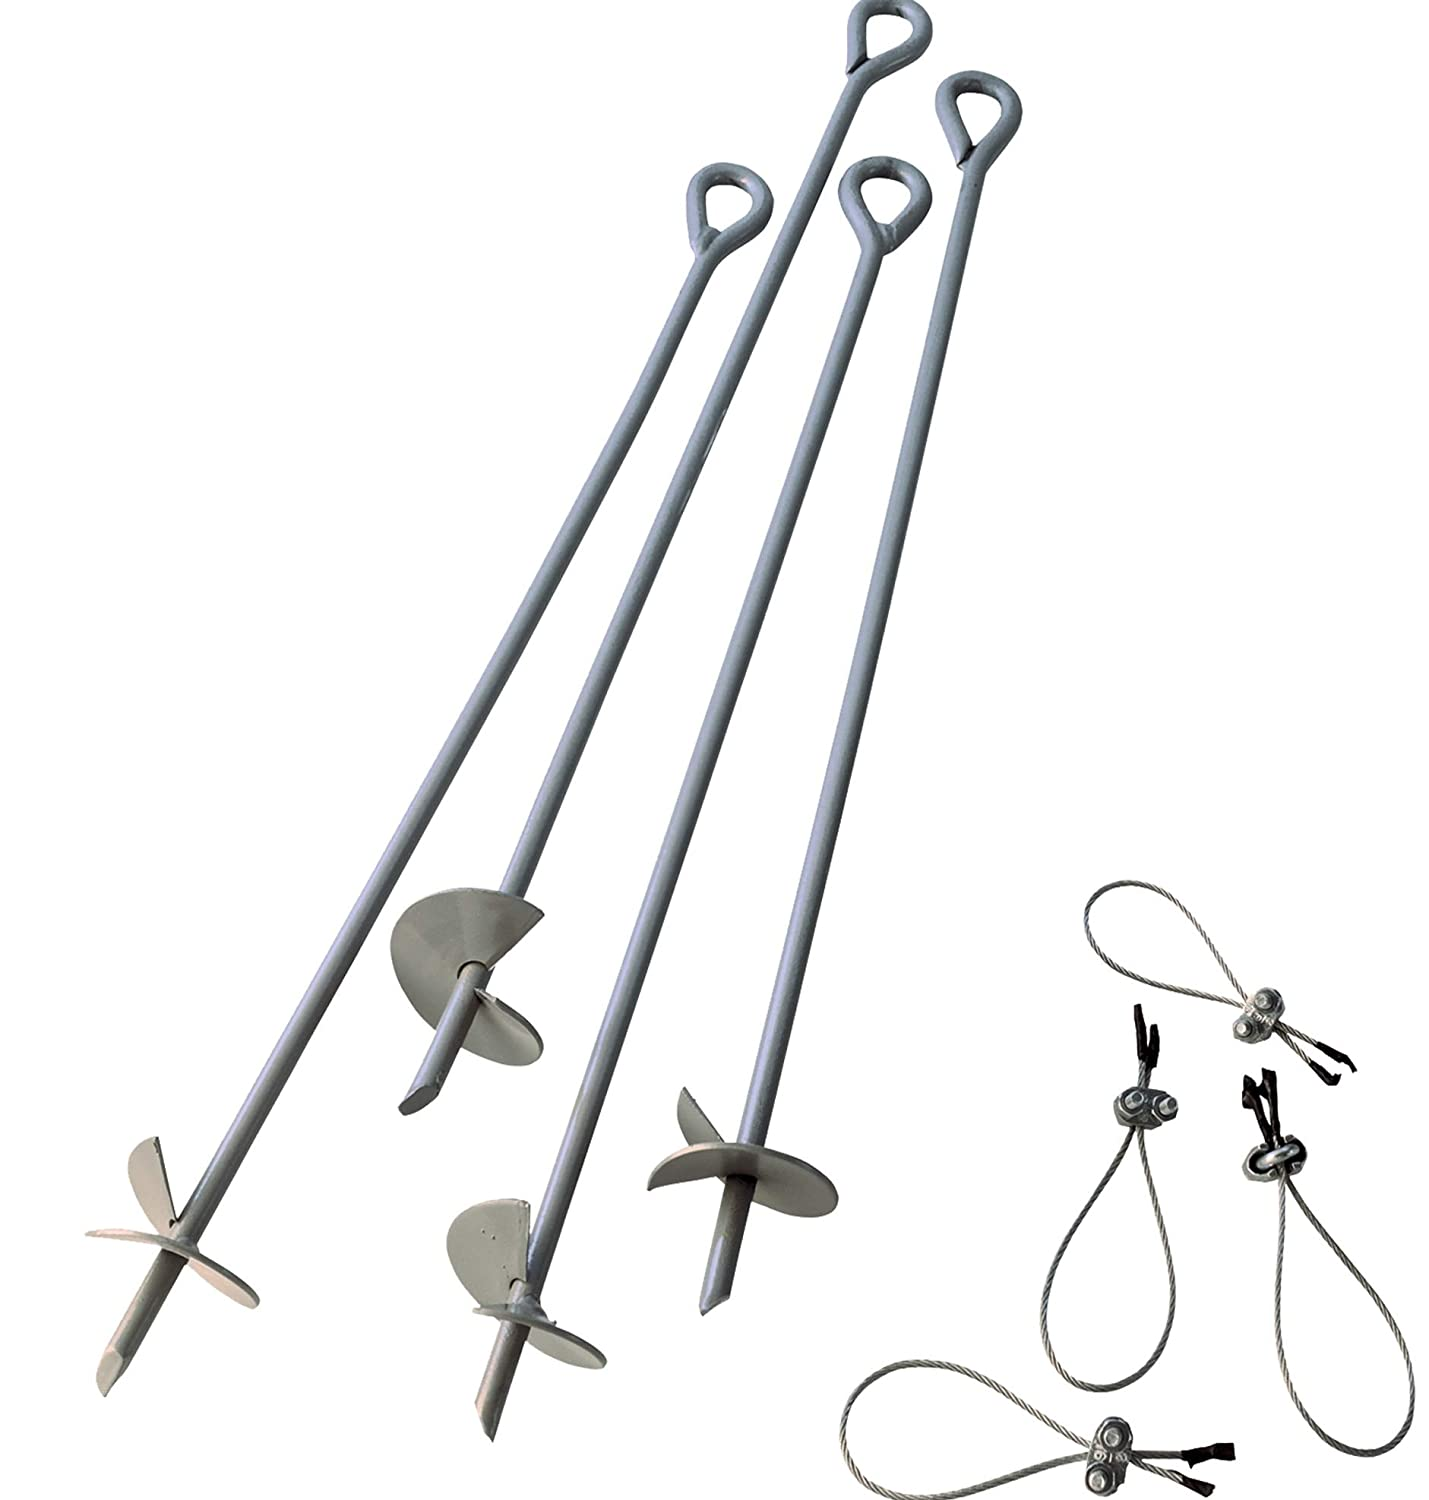 ShelterLogic 4-Piece Auger Anchor Kit, 30-Inch